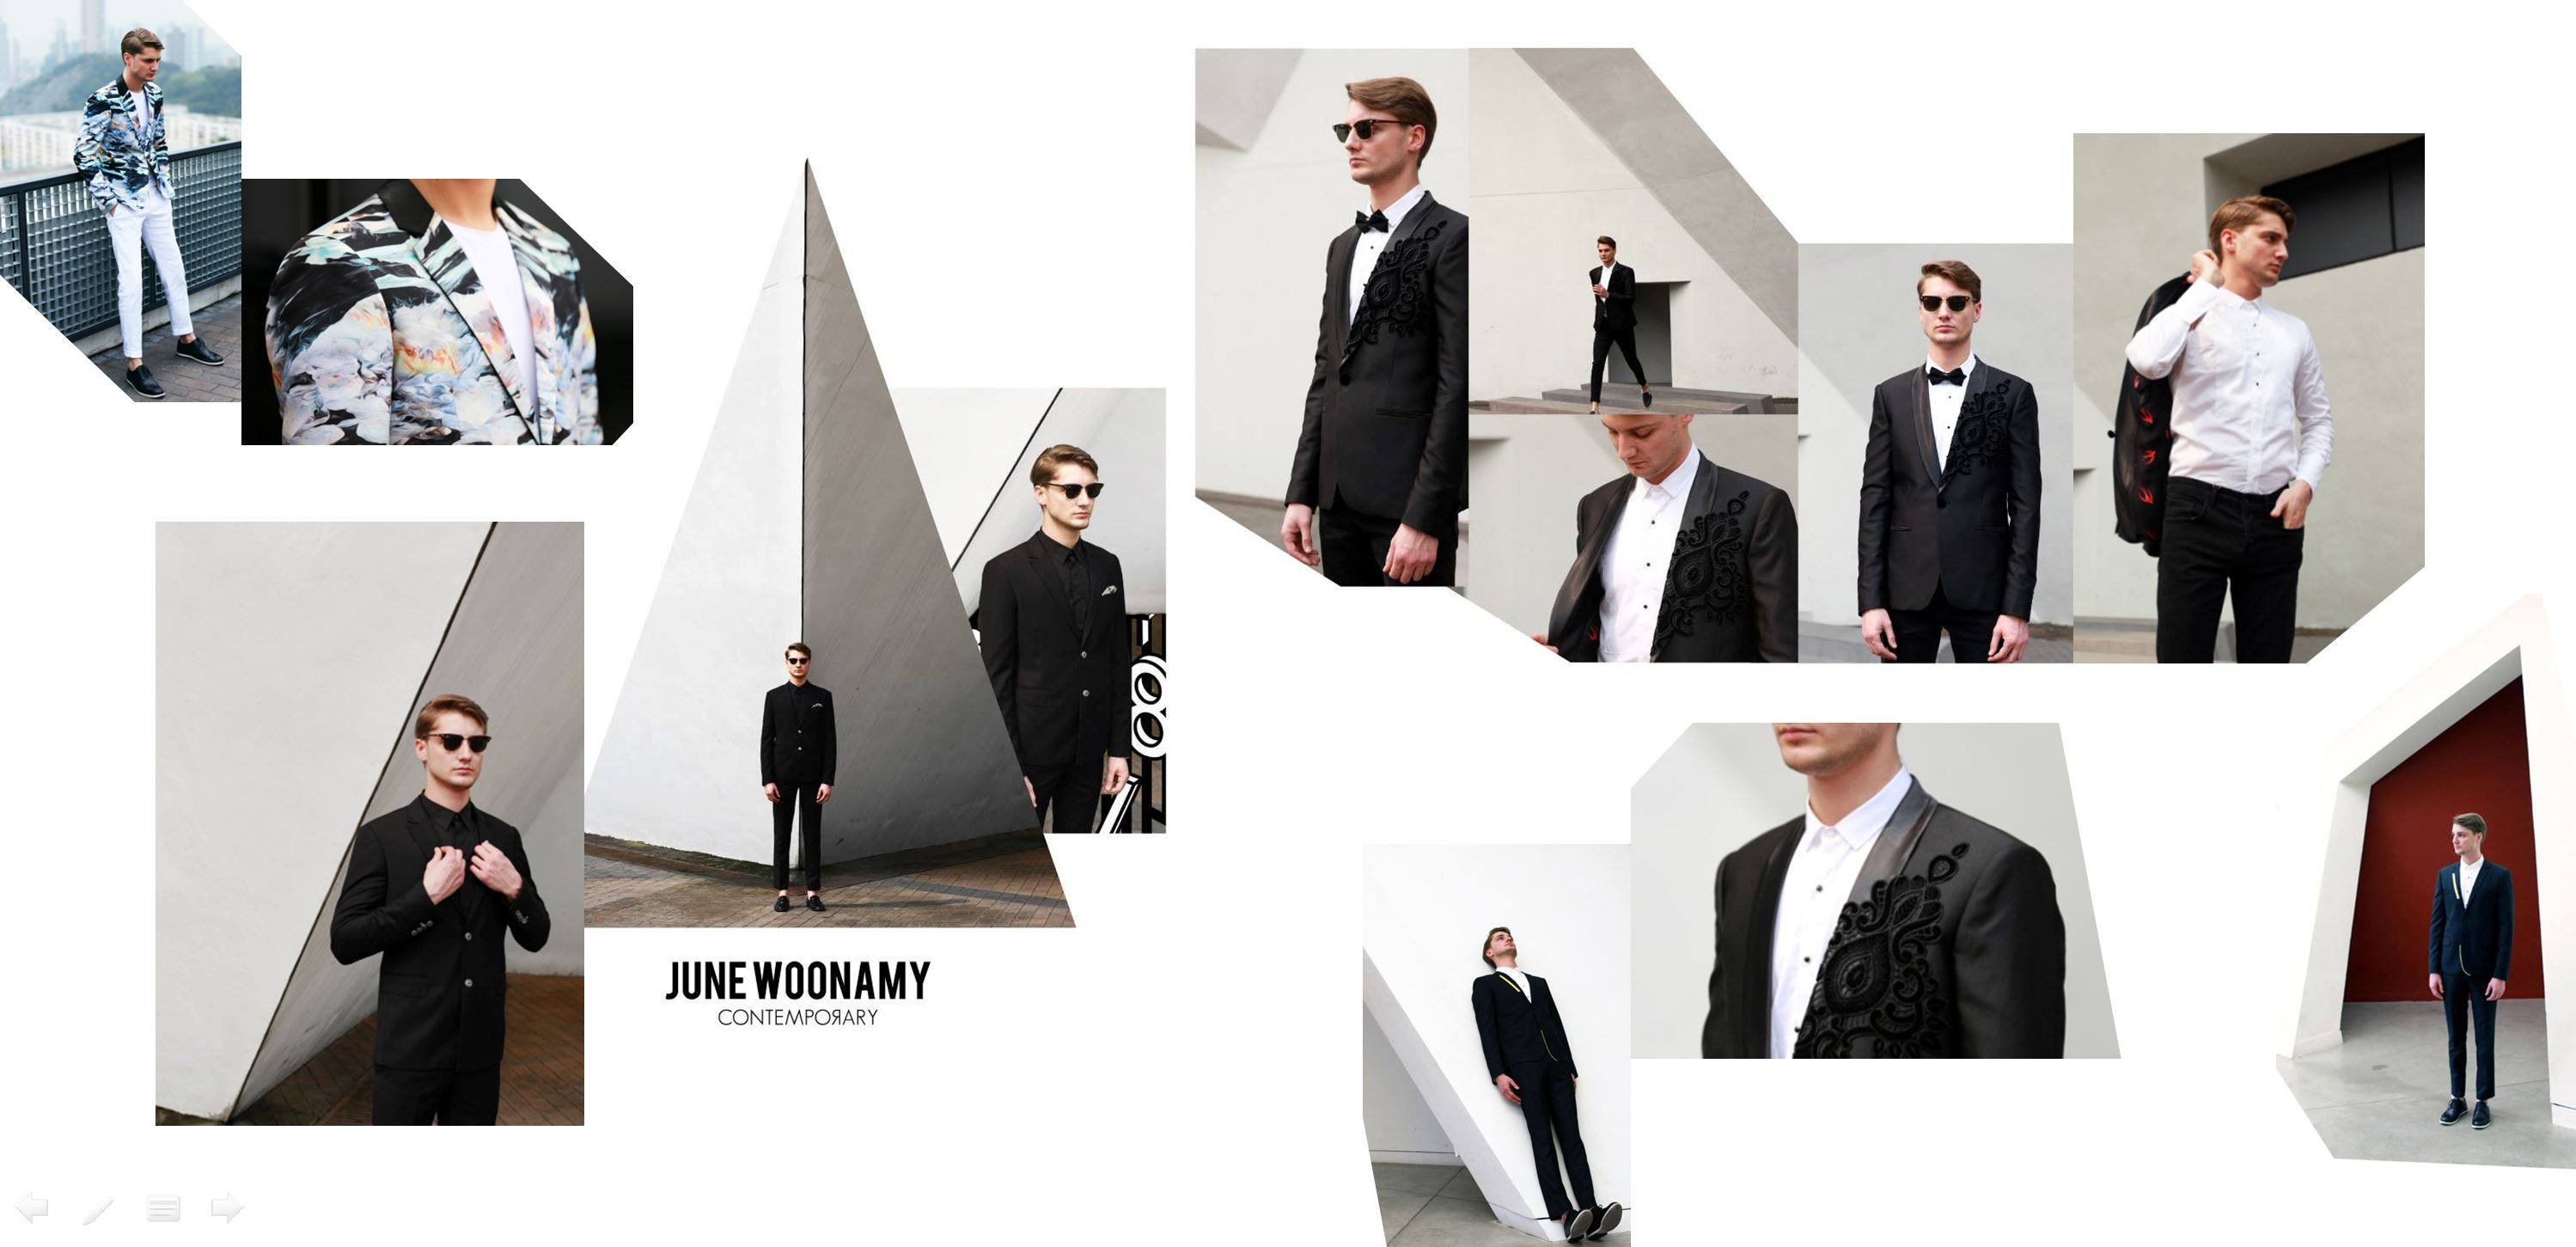 JUNE WOONAMY - Brand Video - Contemporary